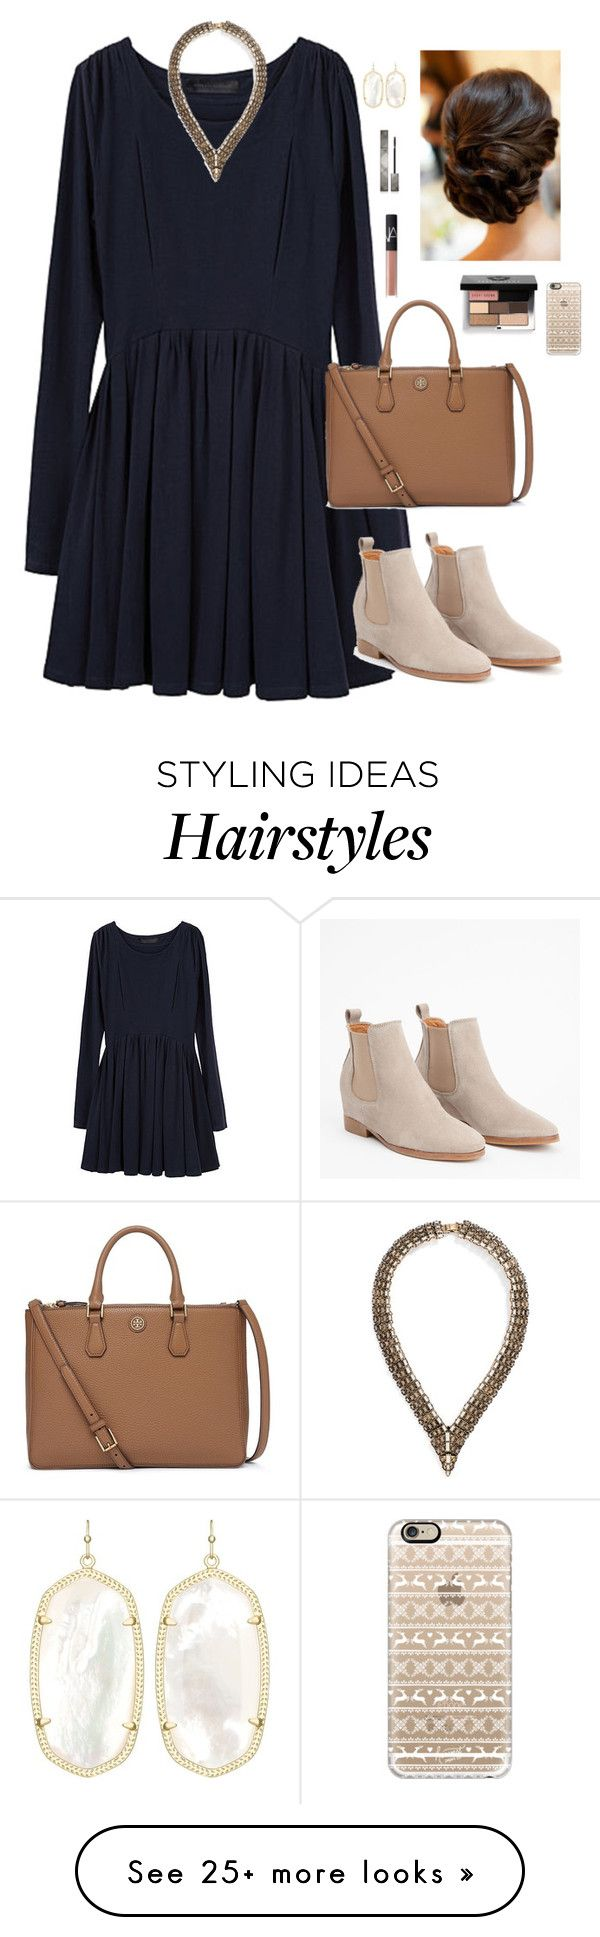 """I'll trade the troubles of this world for your peace inside my soul."" by oh-so-rachel on Polyvore featuring Proenza Schouler, BaubleBar, Tory Burch, Casetify, Burberry, NARS Cosmetics, Kendra Scott and Bobbi Brown Cosmetics"